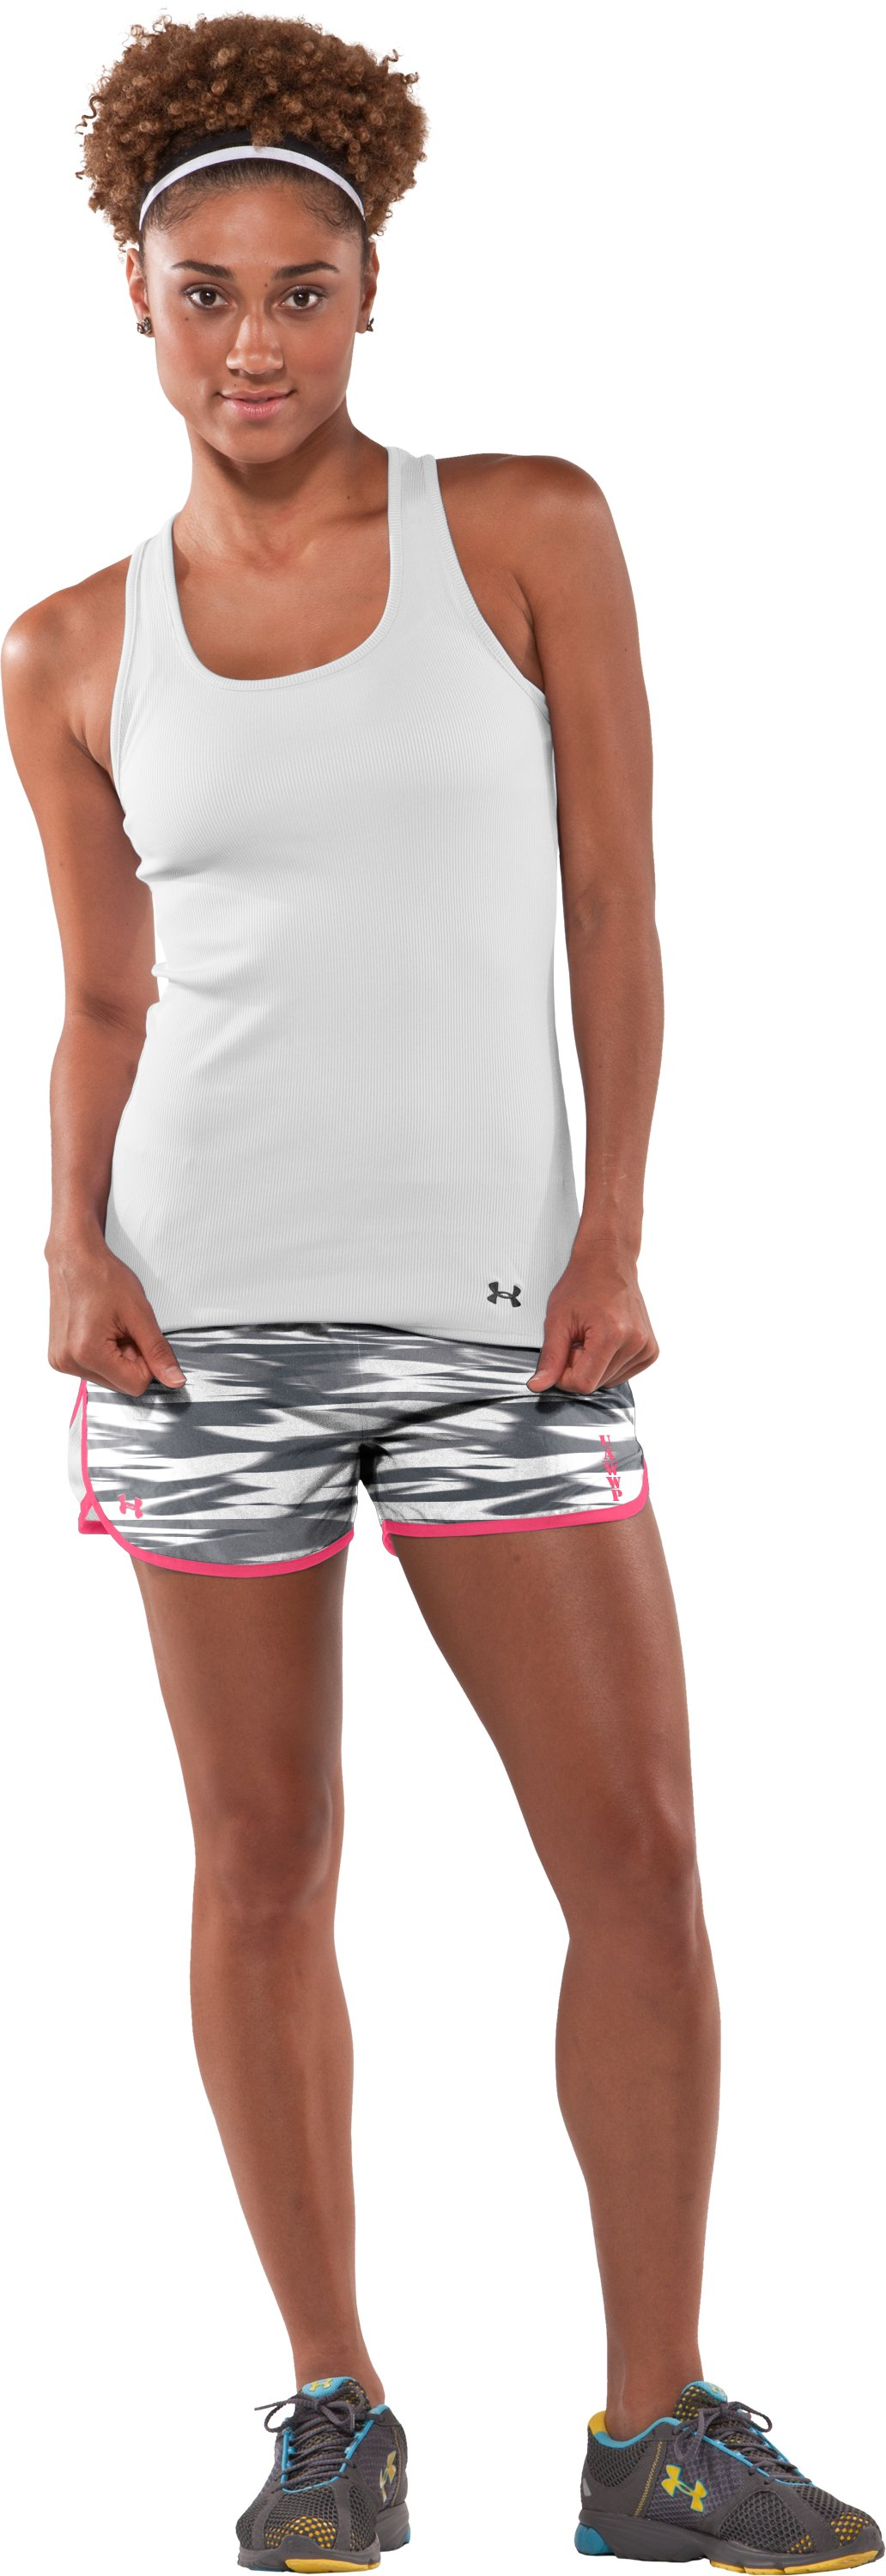 Women's WWP Training Short, Charcoal